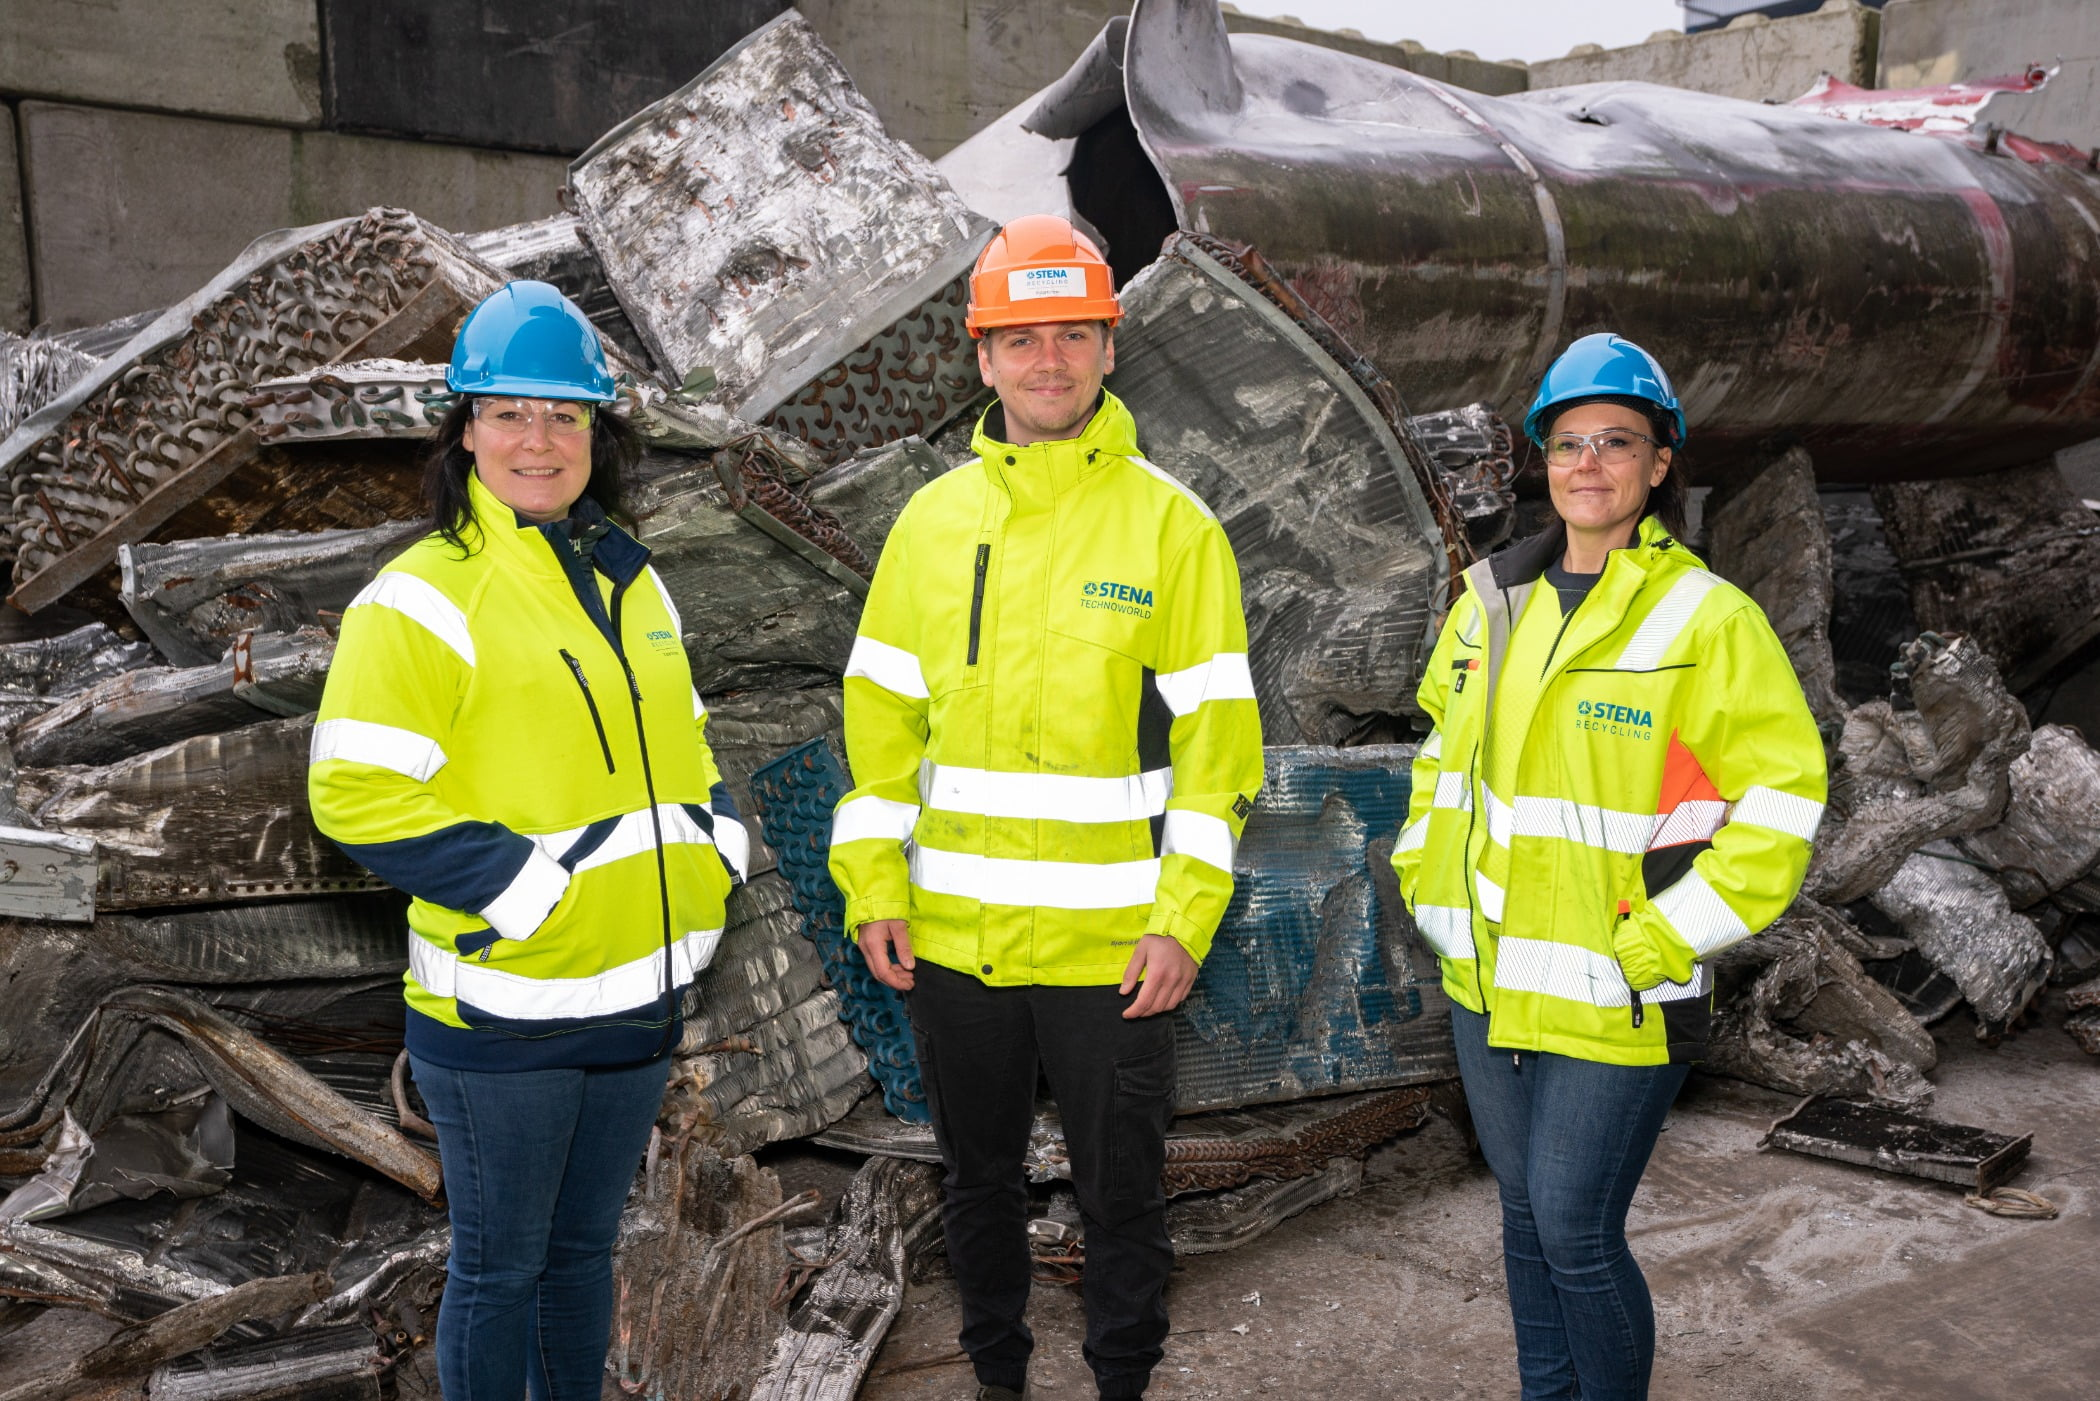 Hard hat, High-visibility clothing, Trousers, Helmet, Jeans, Workwear, Outerwear, Smile, Tradesman, Infrastructure